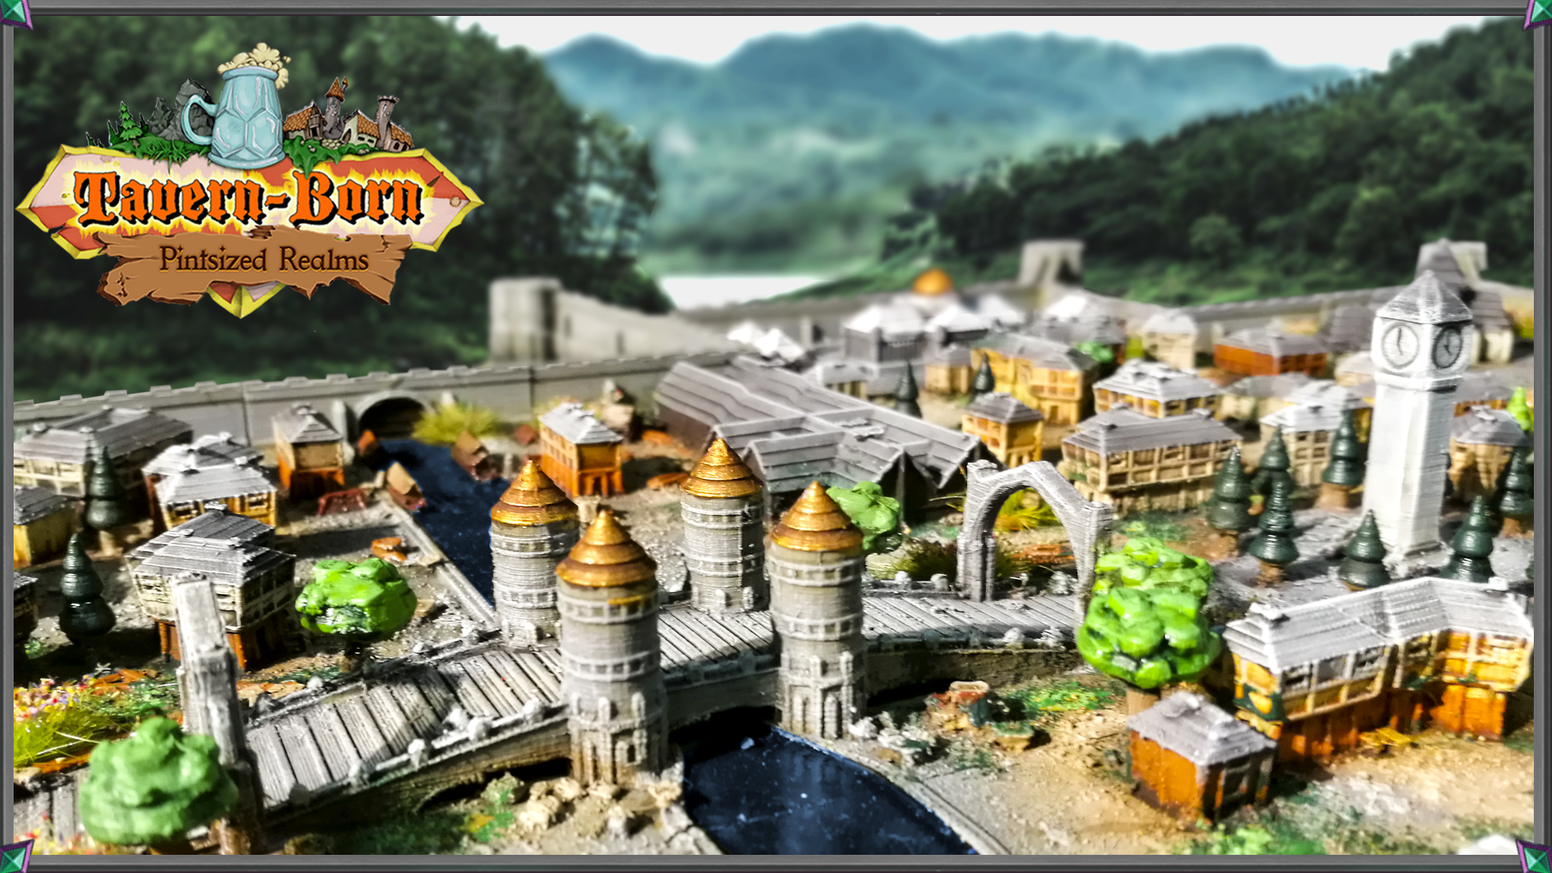 Late Pledges For Tavern Born Pintsized Realms Is Now Available On Backerkit Click